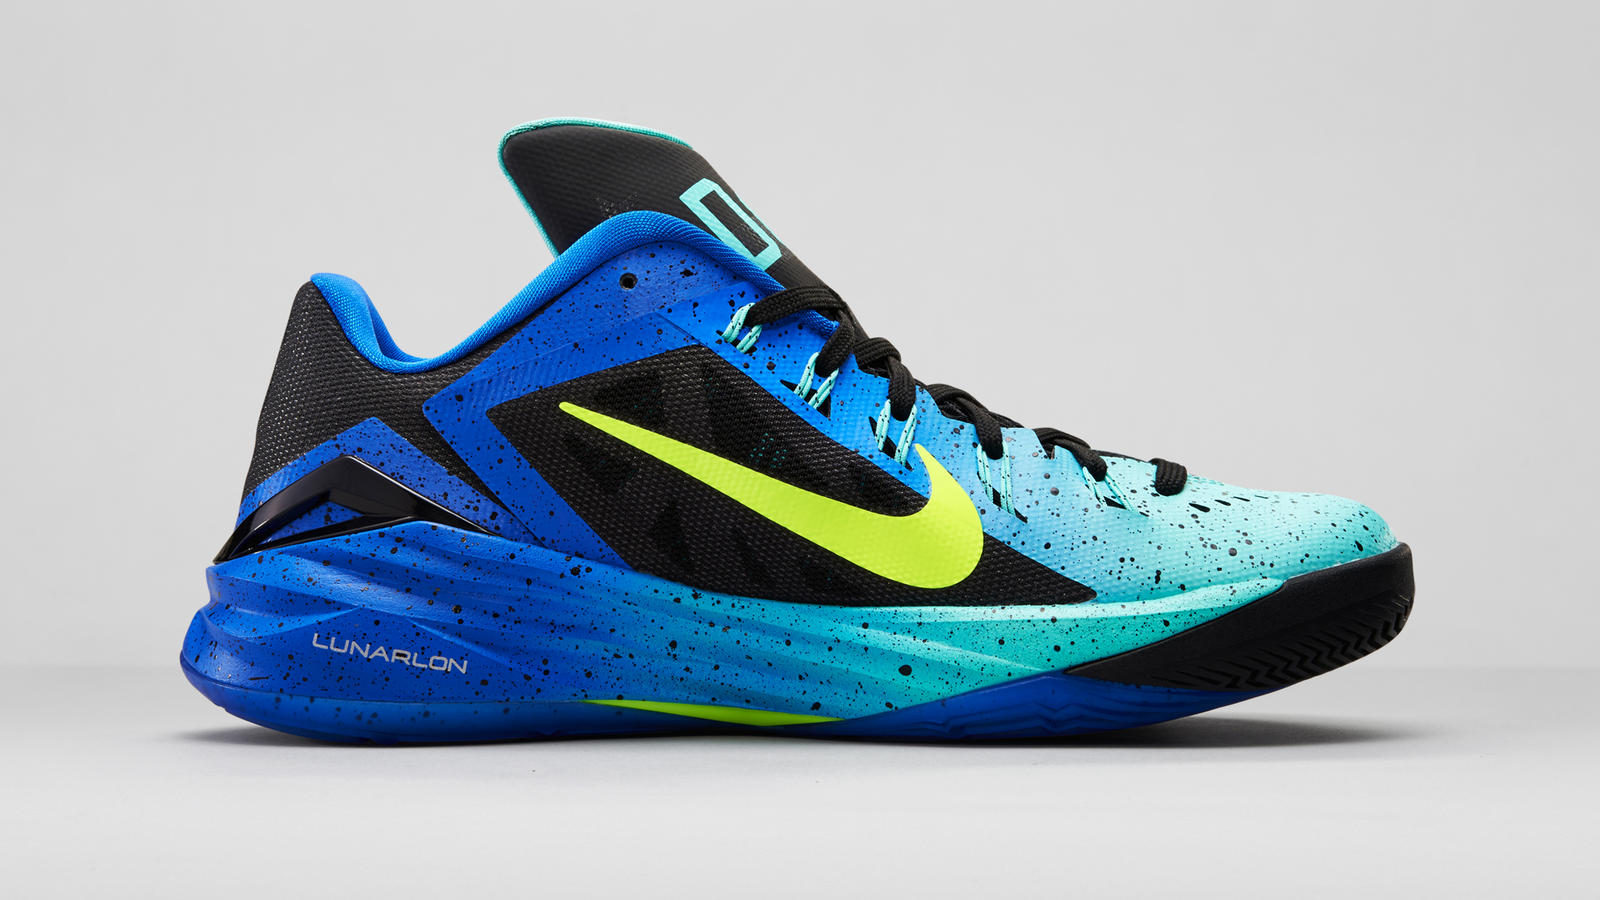 ed610a0356eb37 ... sale the nike hyperdunk 2014 city pack will make its on court debut at  the 2014 ...